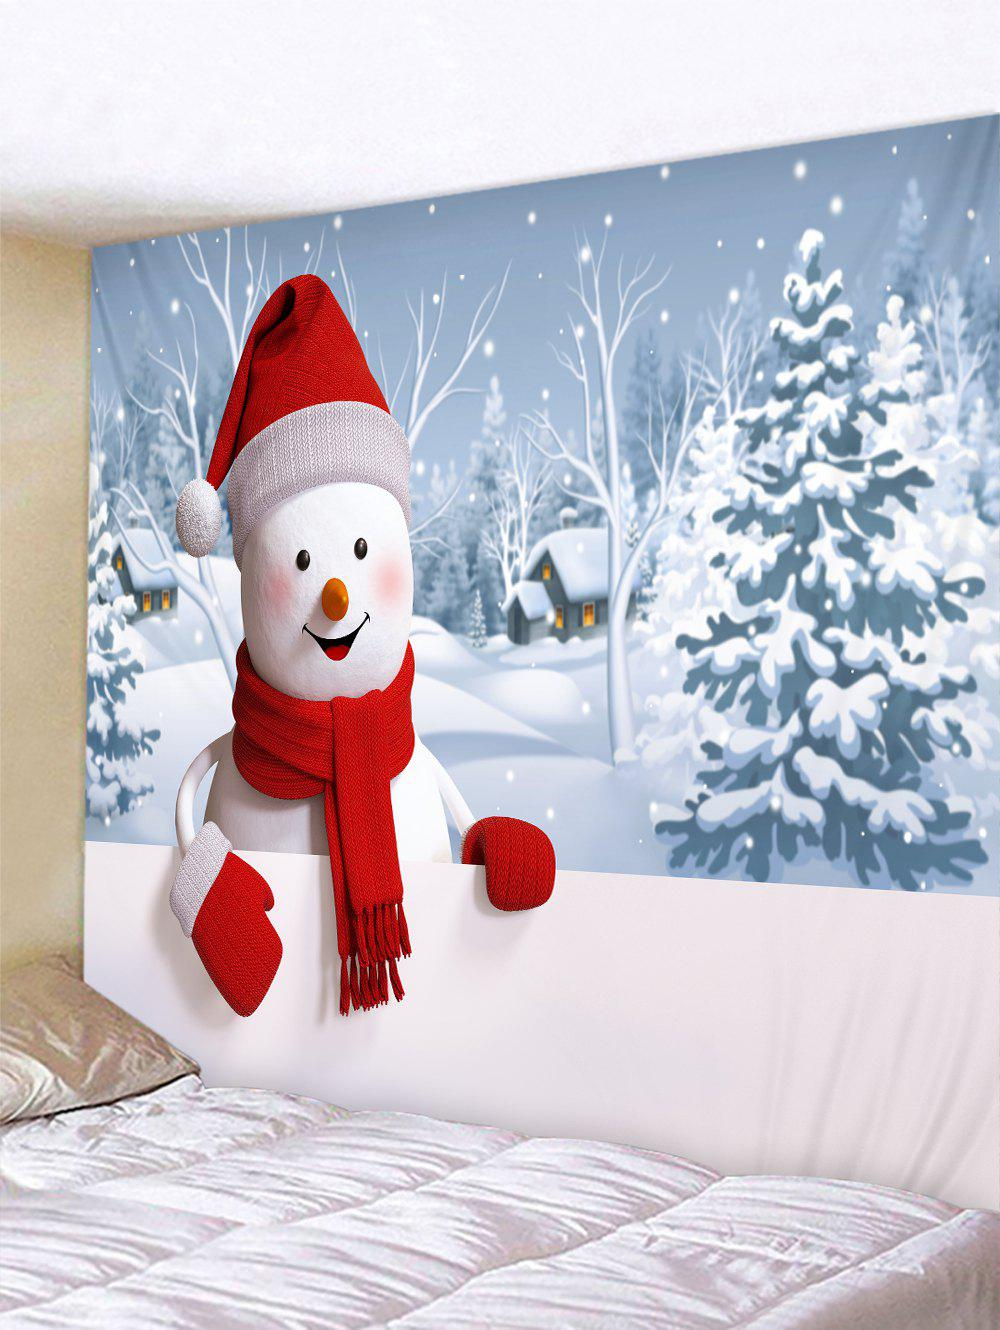 Christmas Snowman Village Print Tapestry Wall Hanging Art Decoration - multicolor W79 X L59 INCH